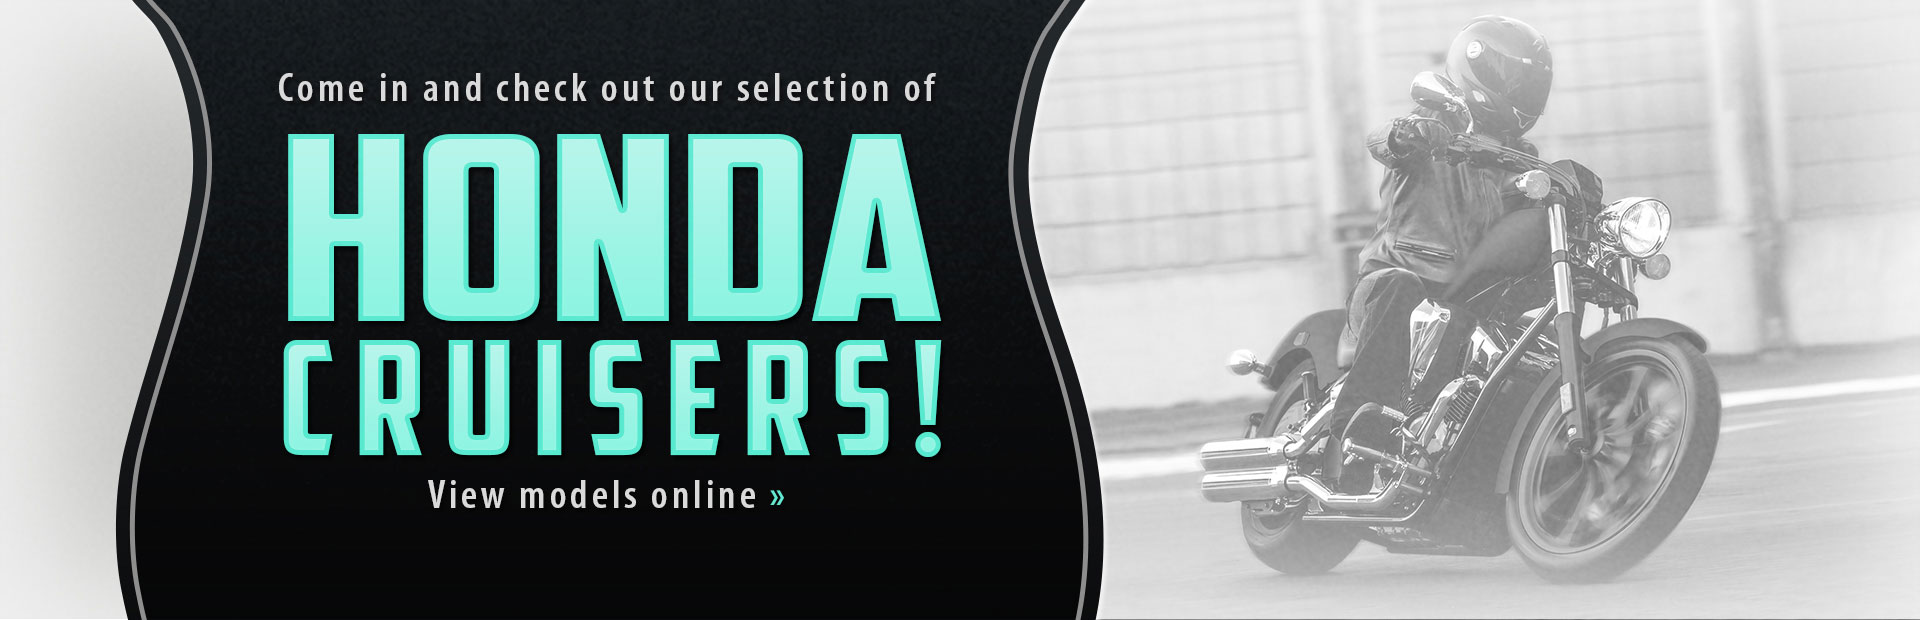 Come in and check out our selection of Honda cruisers! Click here to view models online.